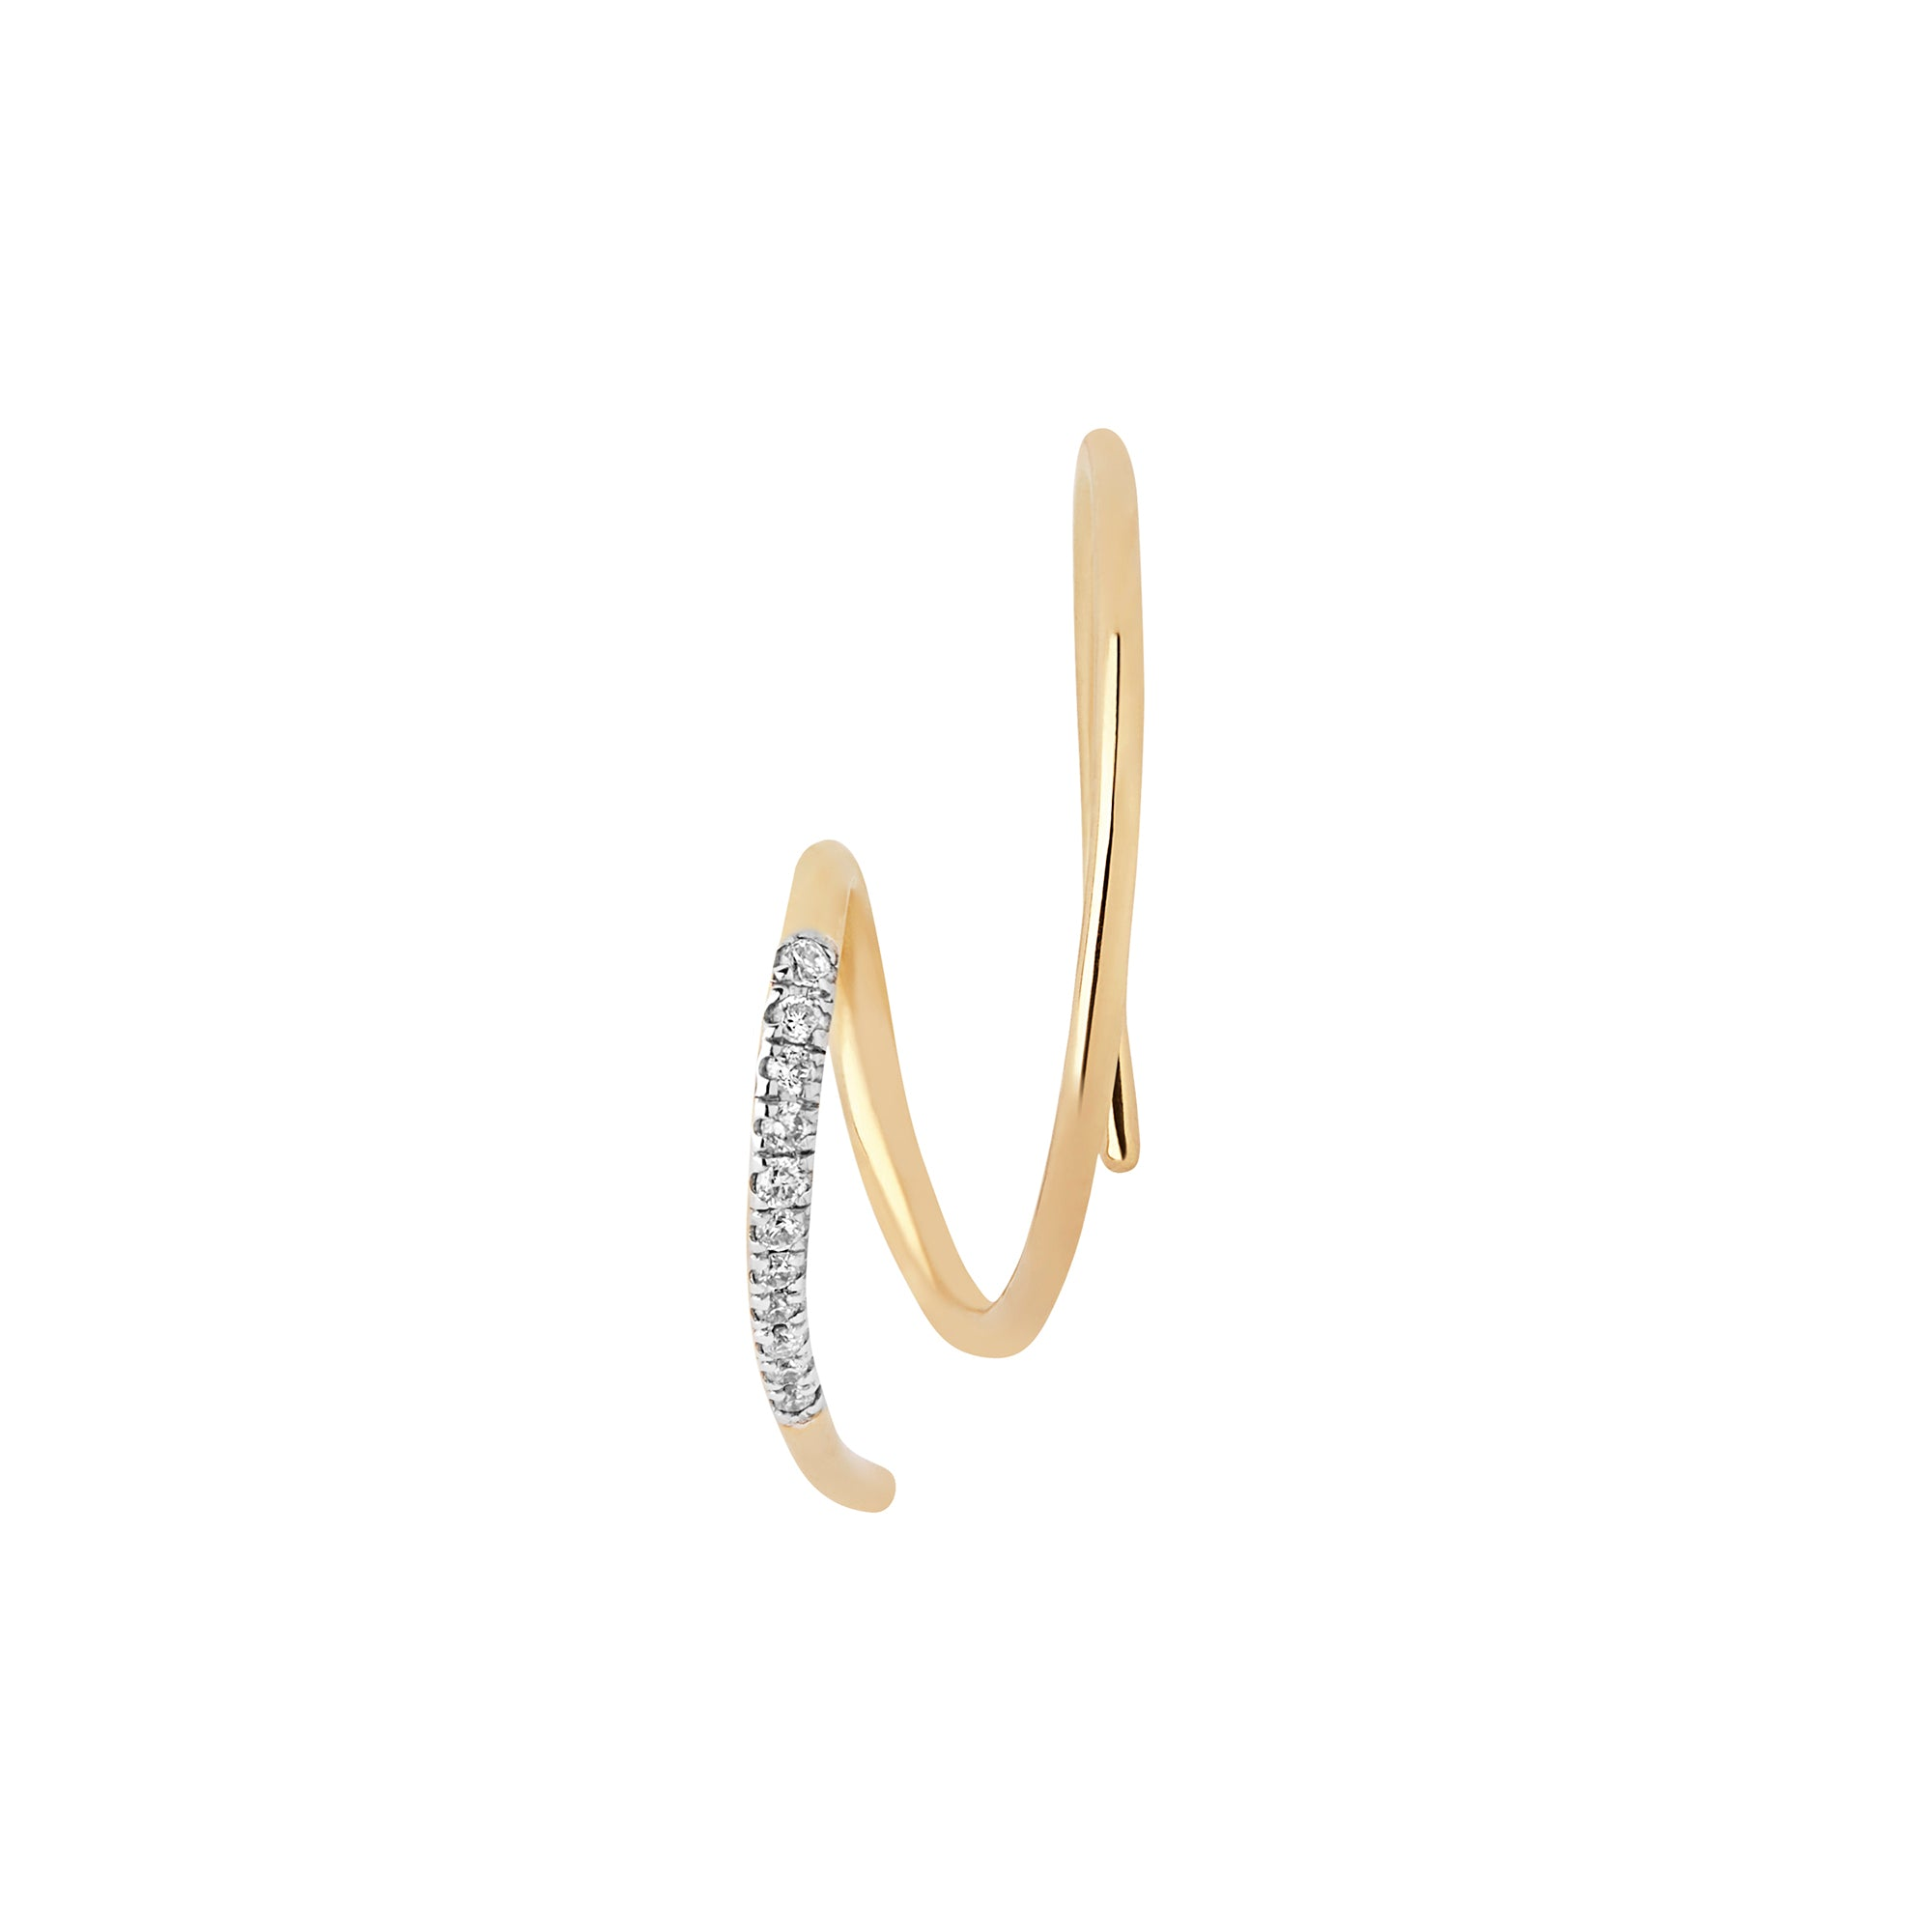 The Racer Diamond Earring by Maria Black for Broken English Jewelry